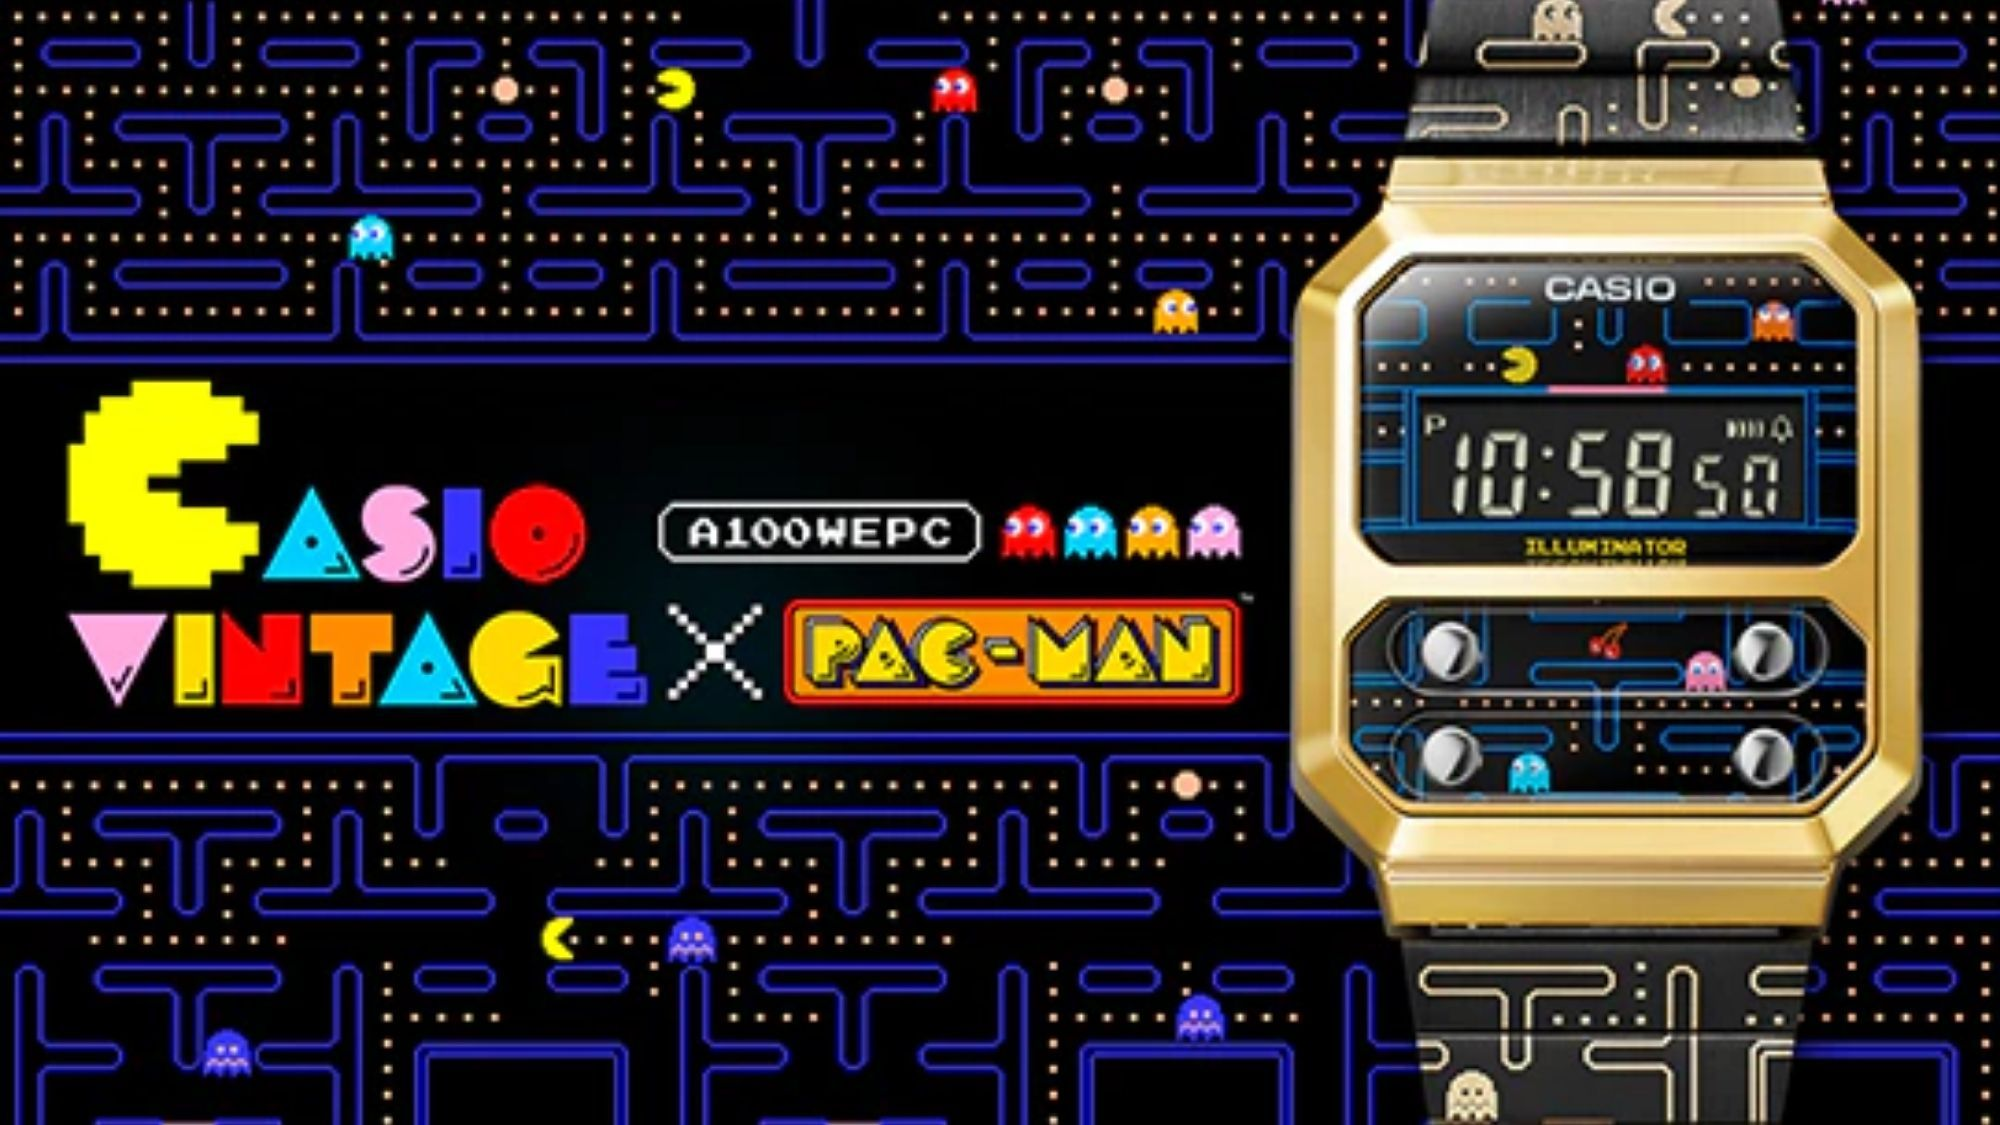 """Casio partners with Pac-Man for """"retro"""" digital watch photo from Casio"""